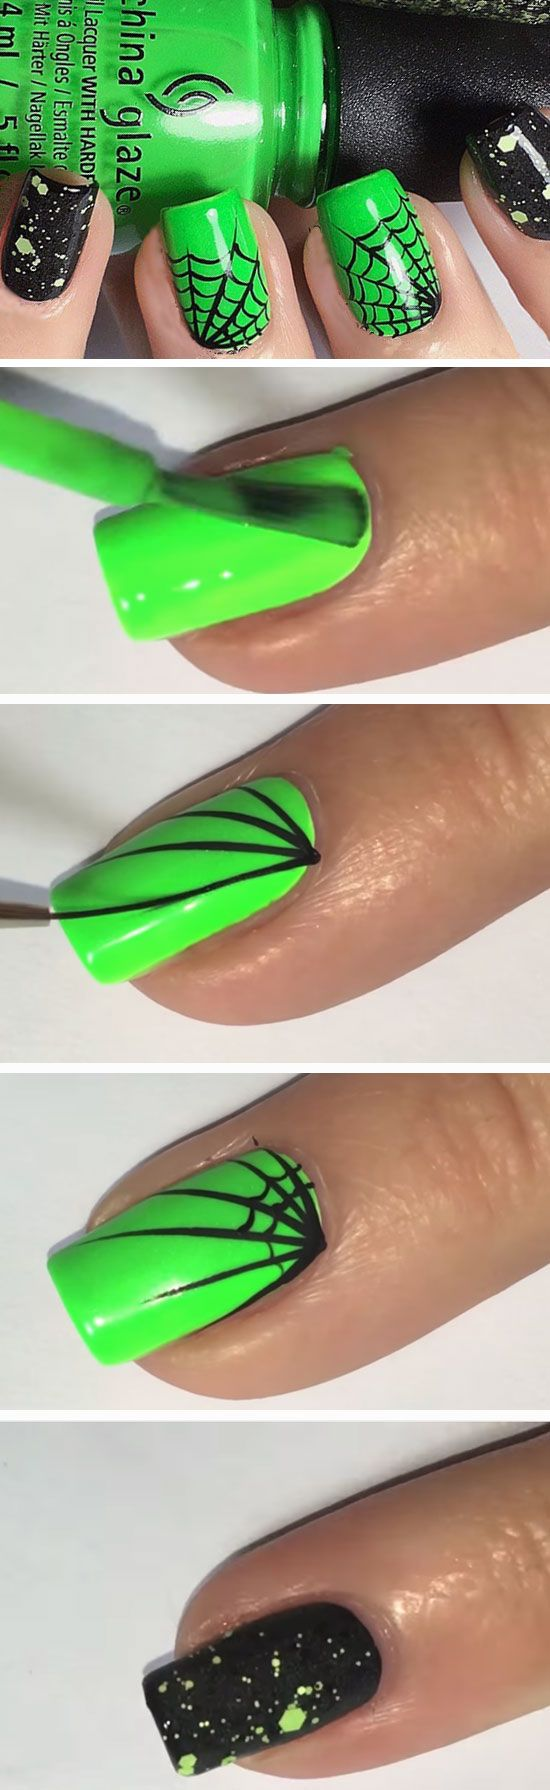 38 best Nails images on Pinterest | Nail design, Cute nails and Make ...